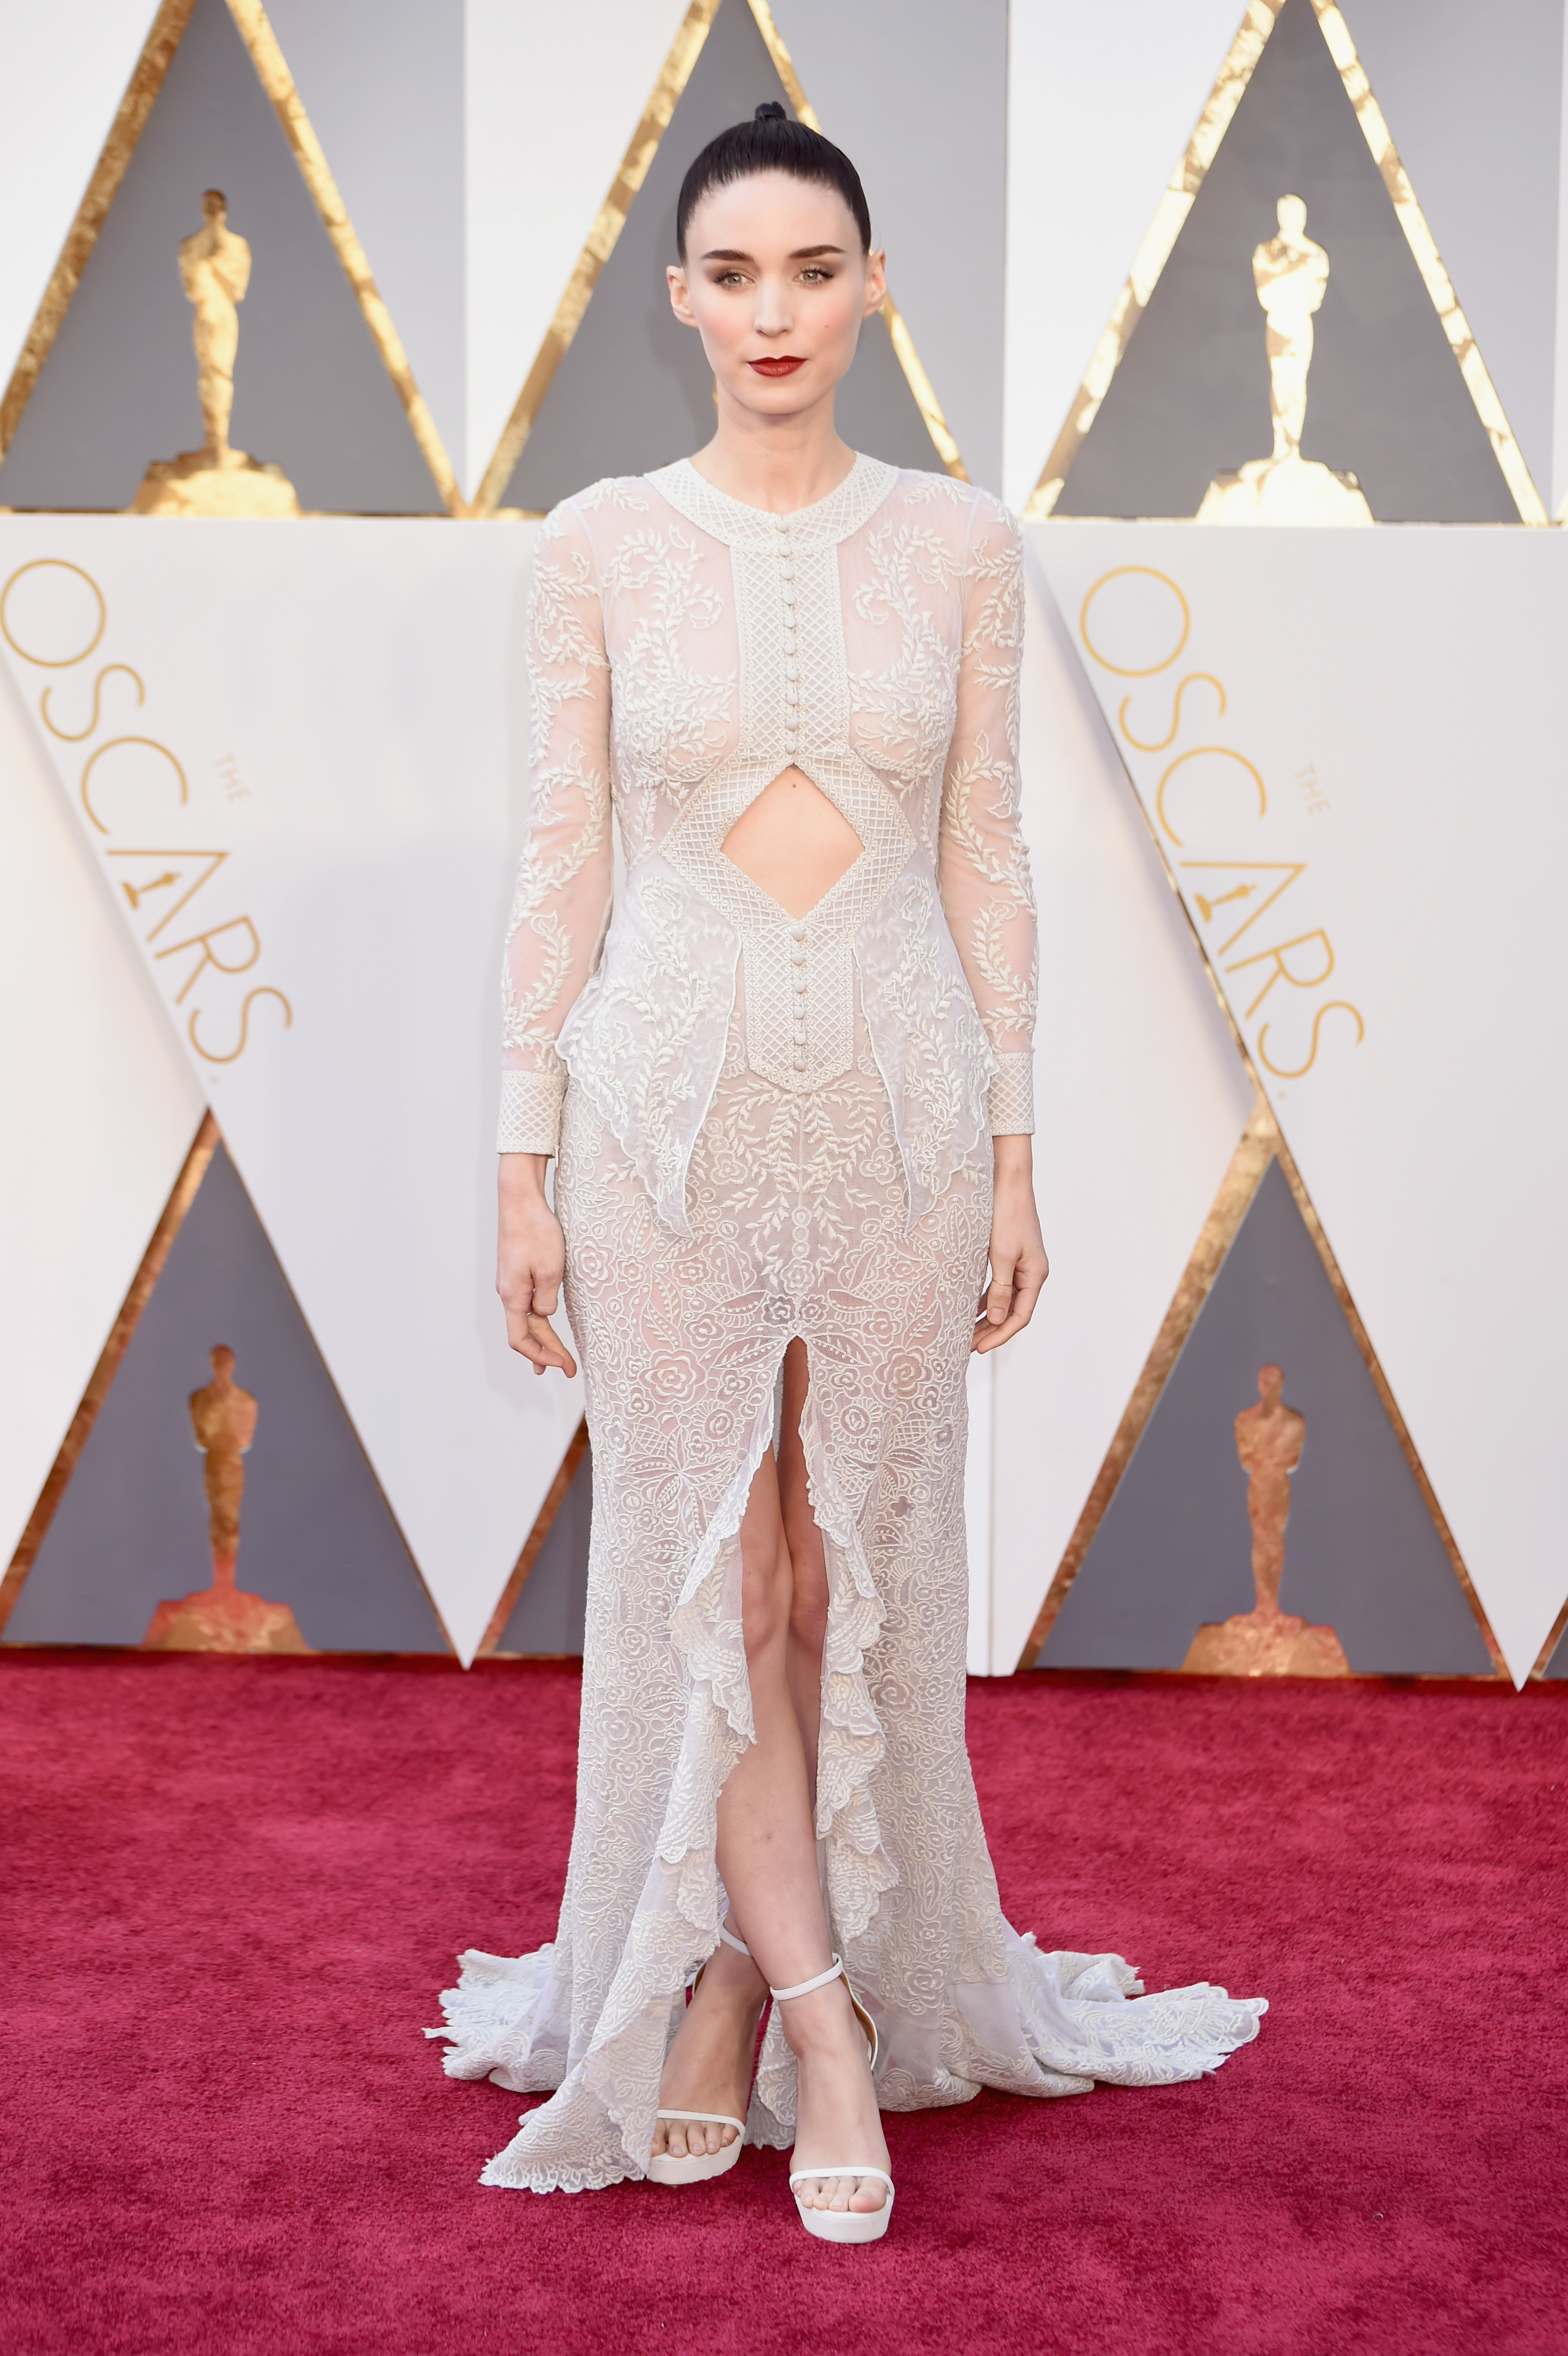 6. Rooney Mara-Givenchy Haute Couture by Riccardo Tisci